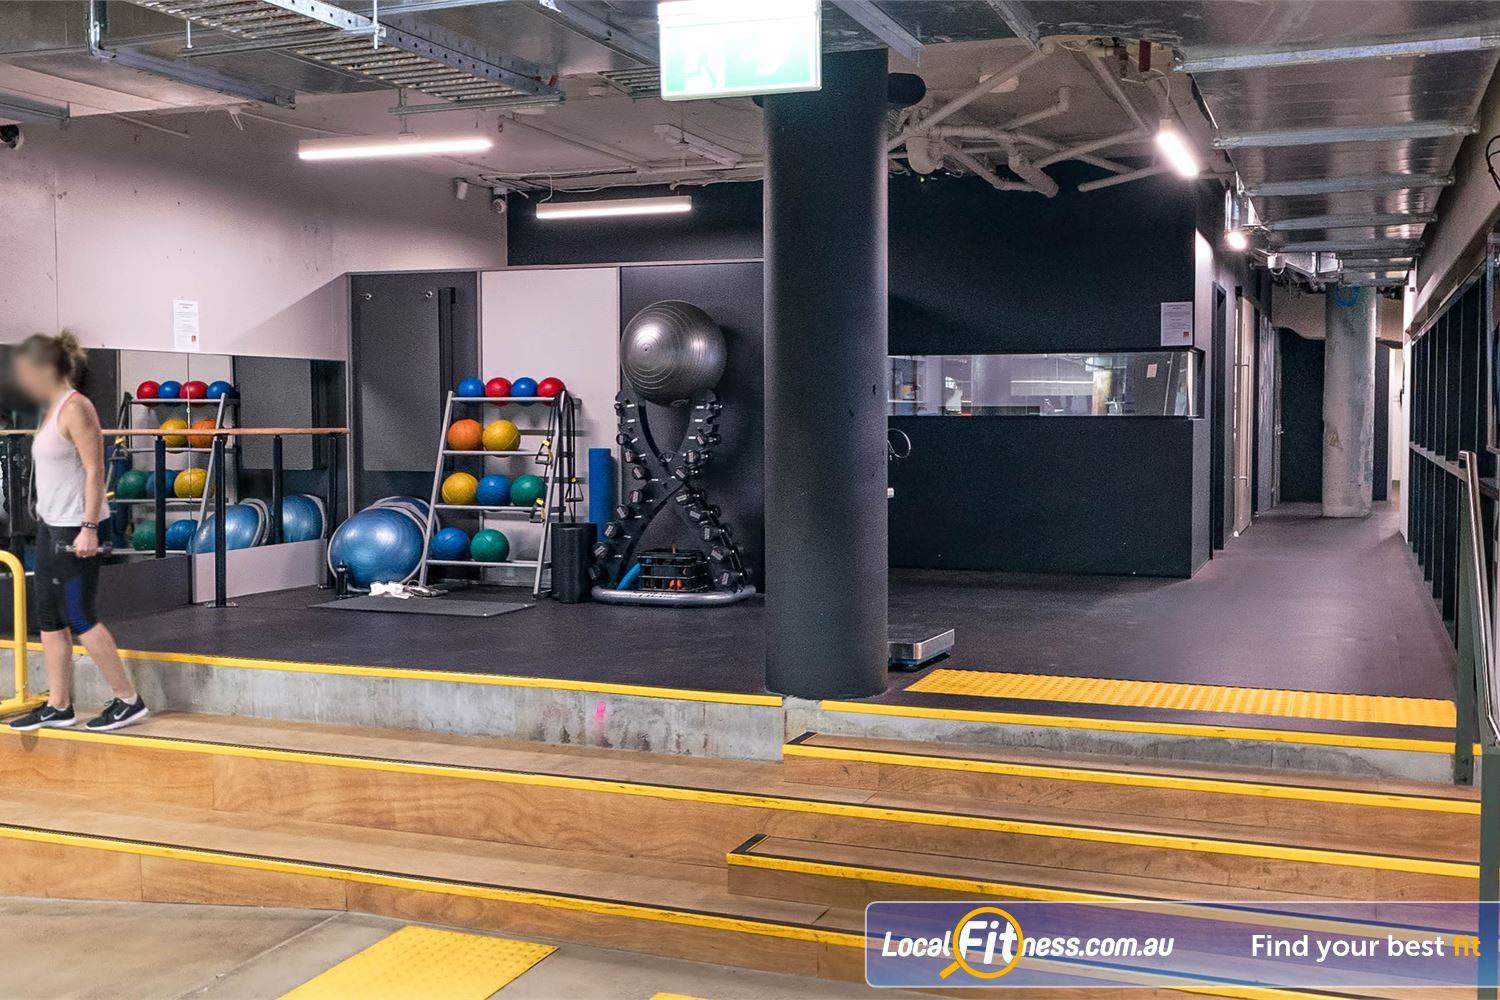 Fitness First Platinum Shelley St Near World Square Fully equipped abs and stretch area with fitballs, bosu balls and more.